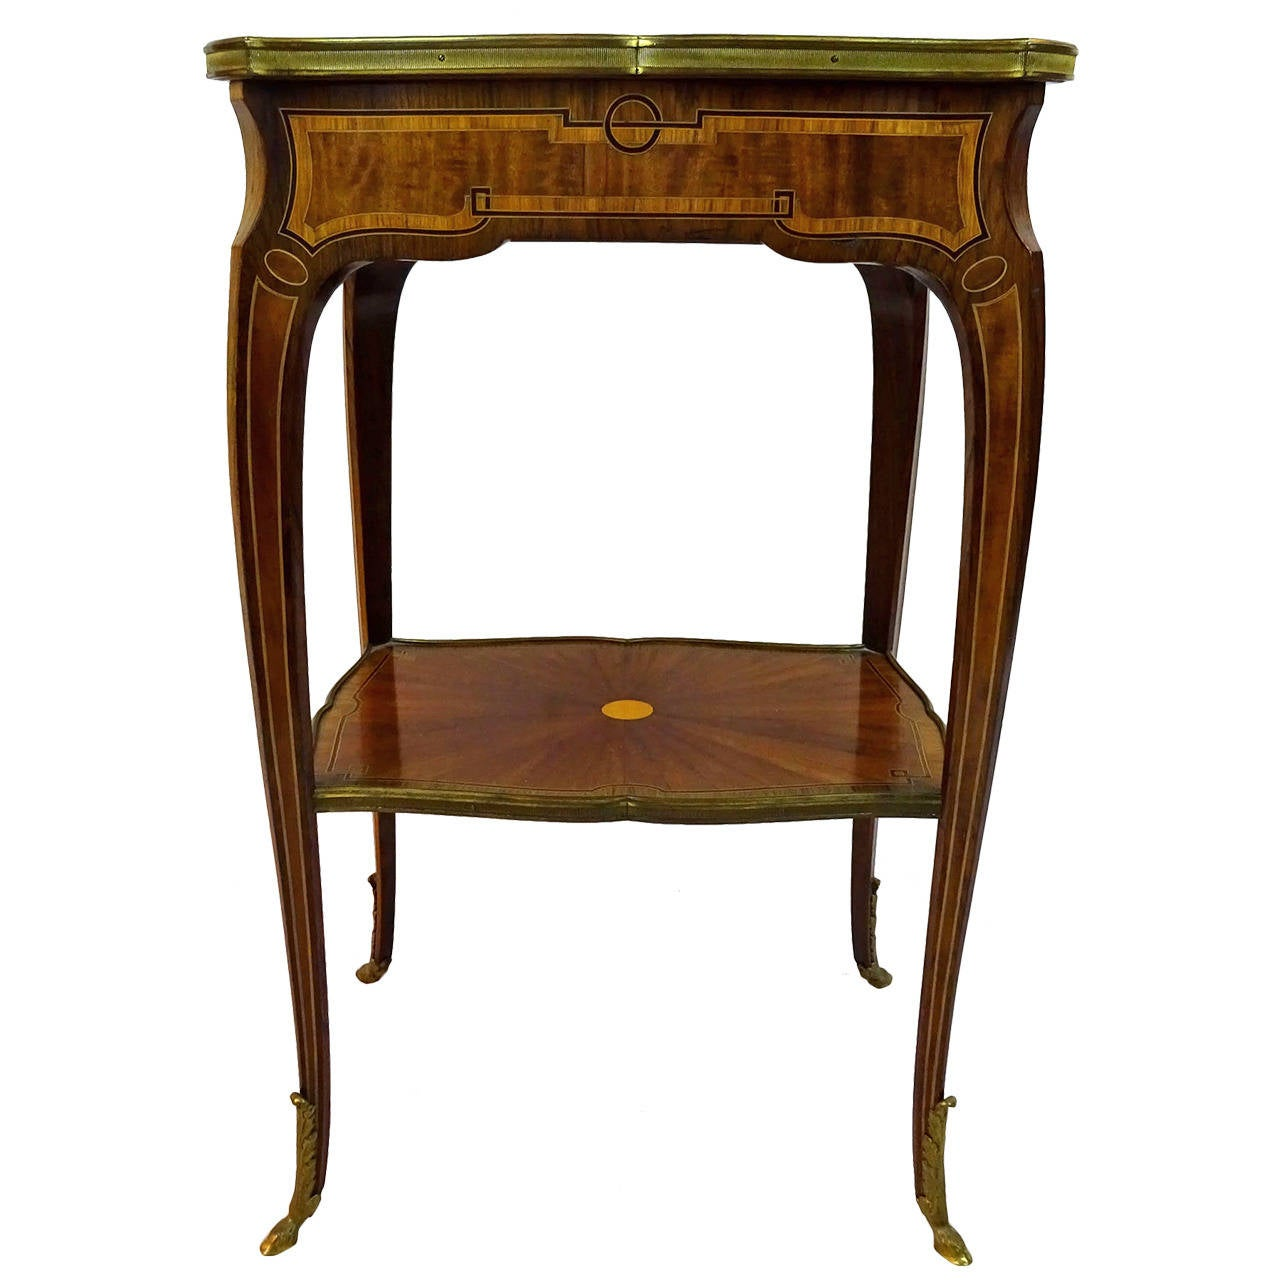 19th century louis xv style marquetry side table for sale at 1stdibs - Table louis xv ...